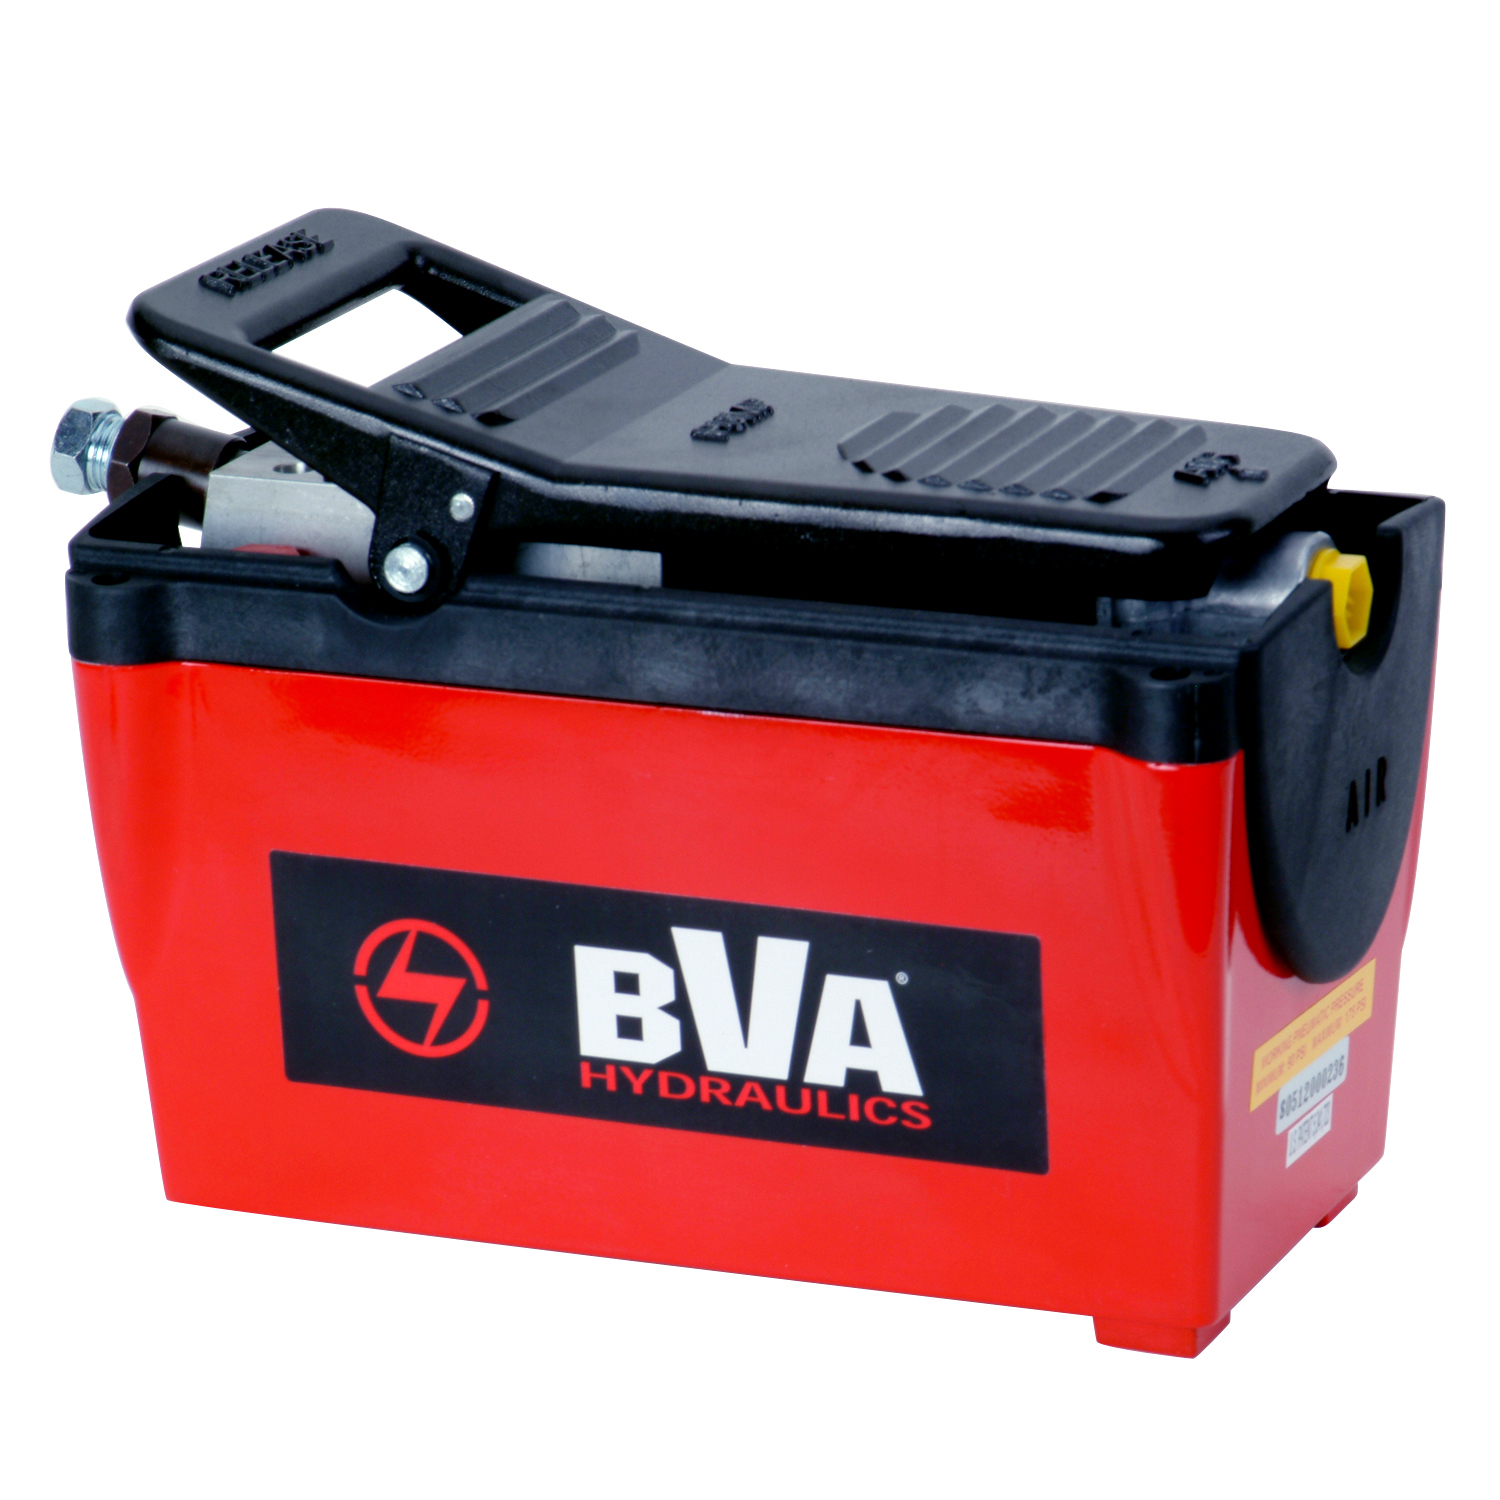 BVA air over hydraulic pump